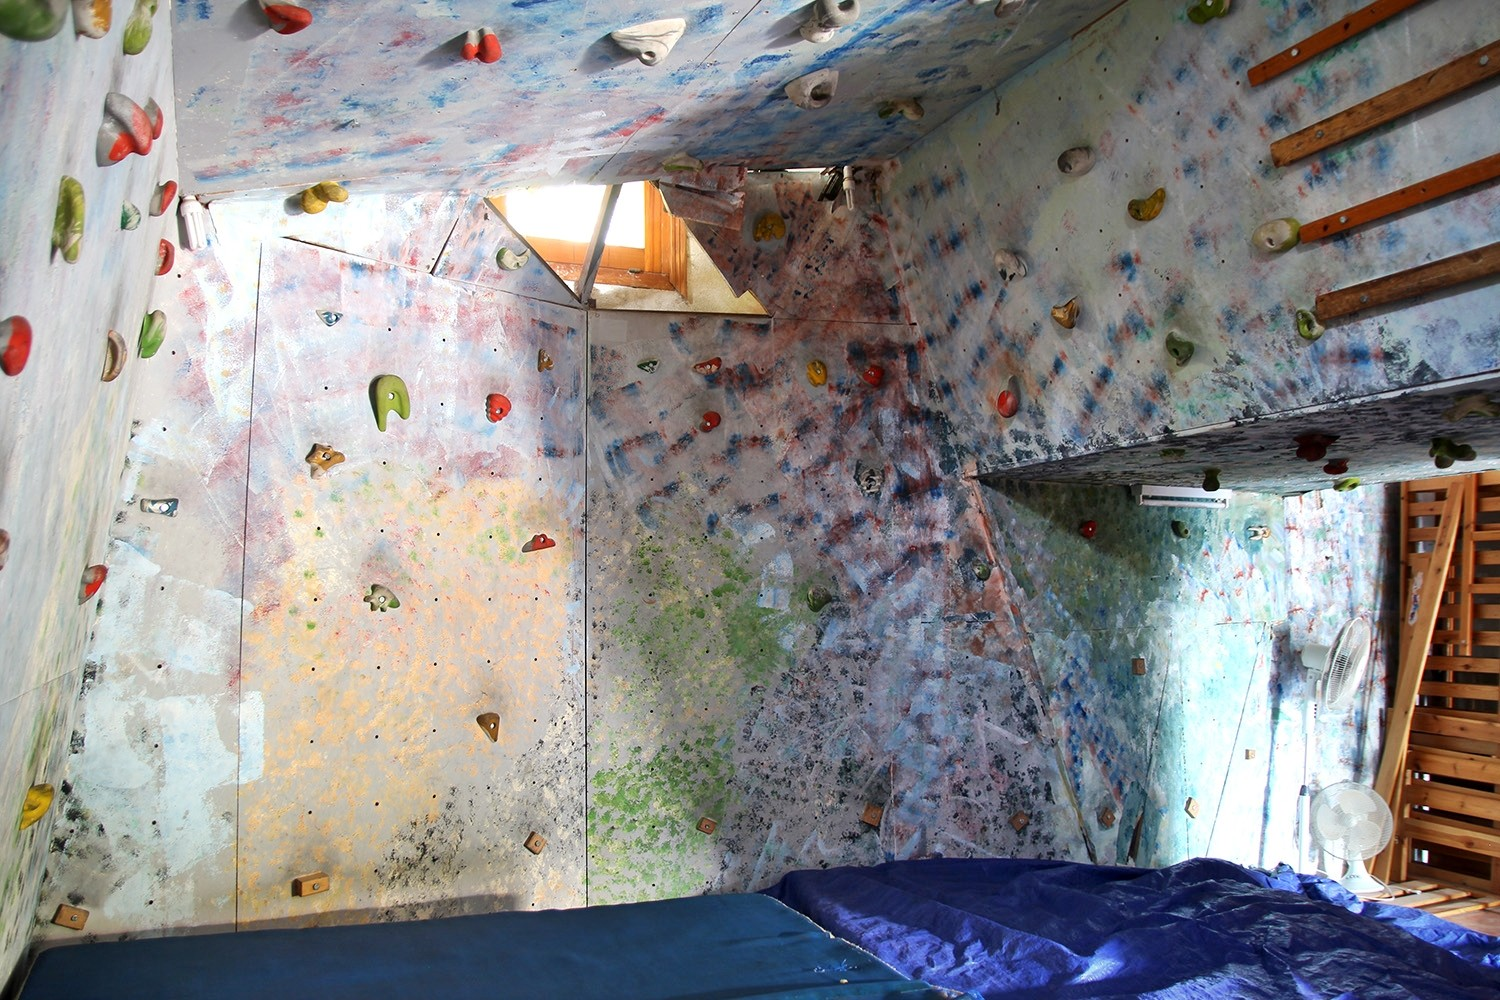 The climbing wall in the garage